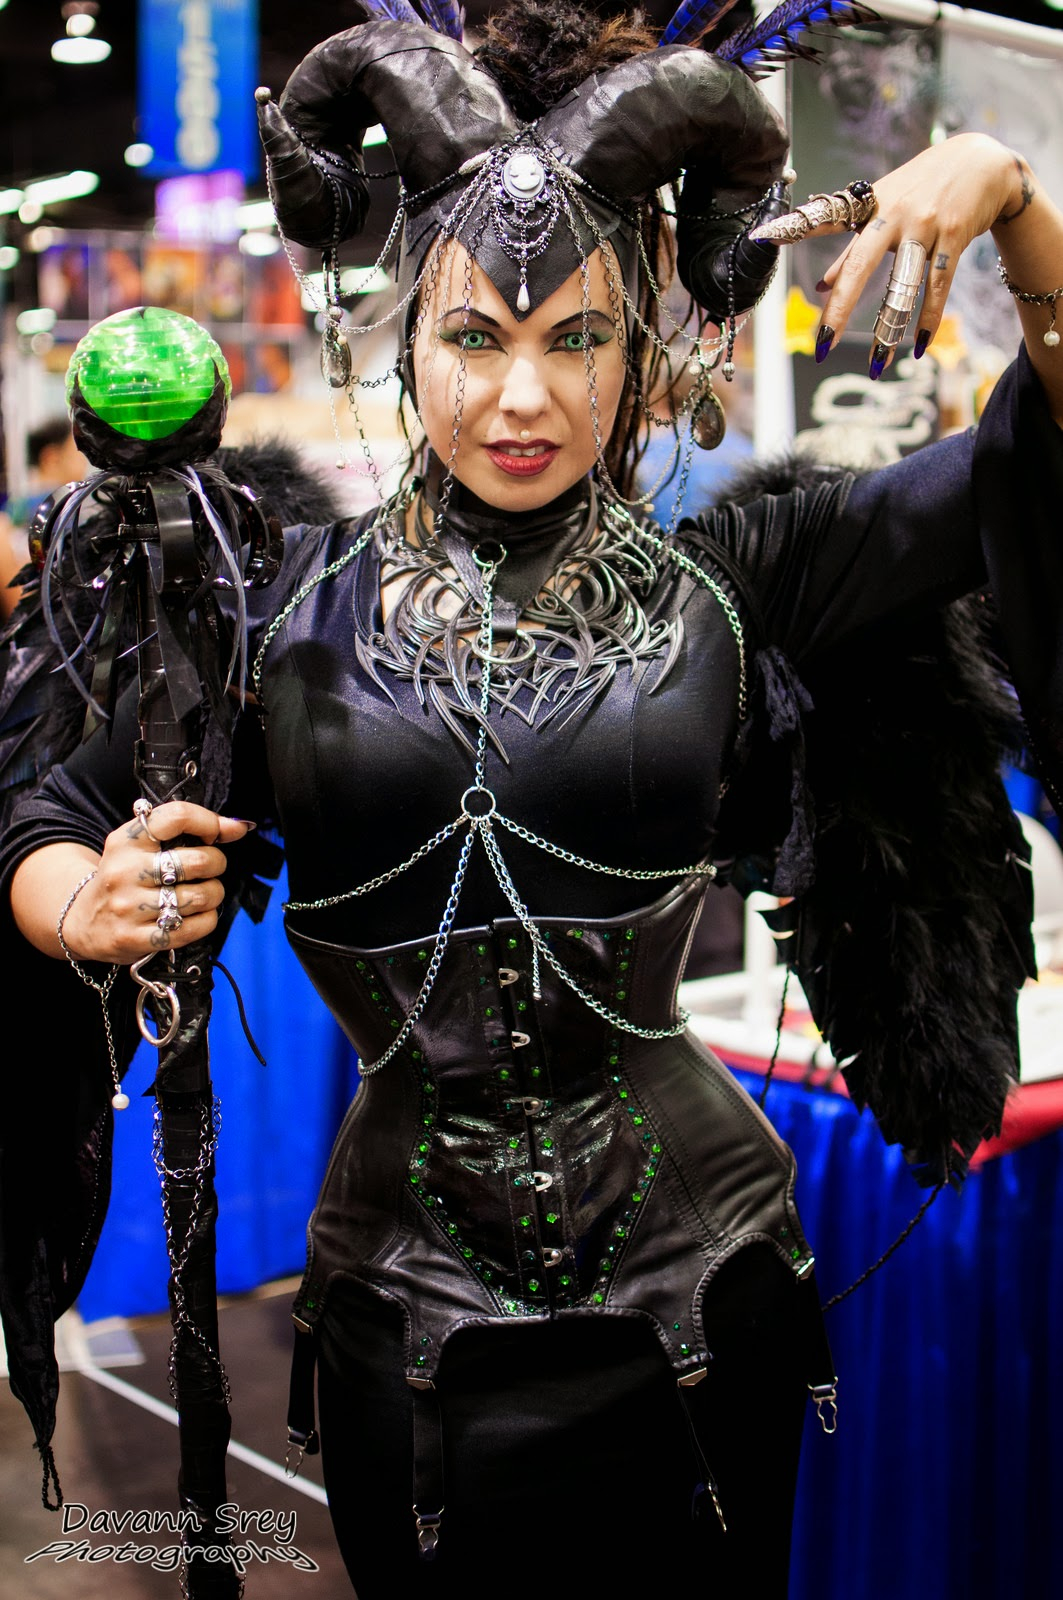 photo de cosplay de la wondercon 2014 de malefique